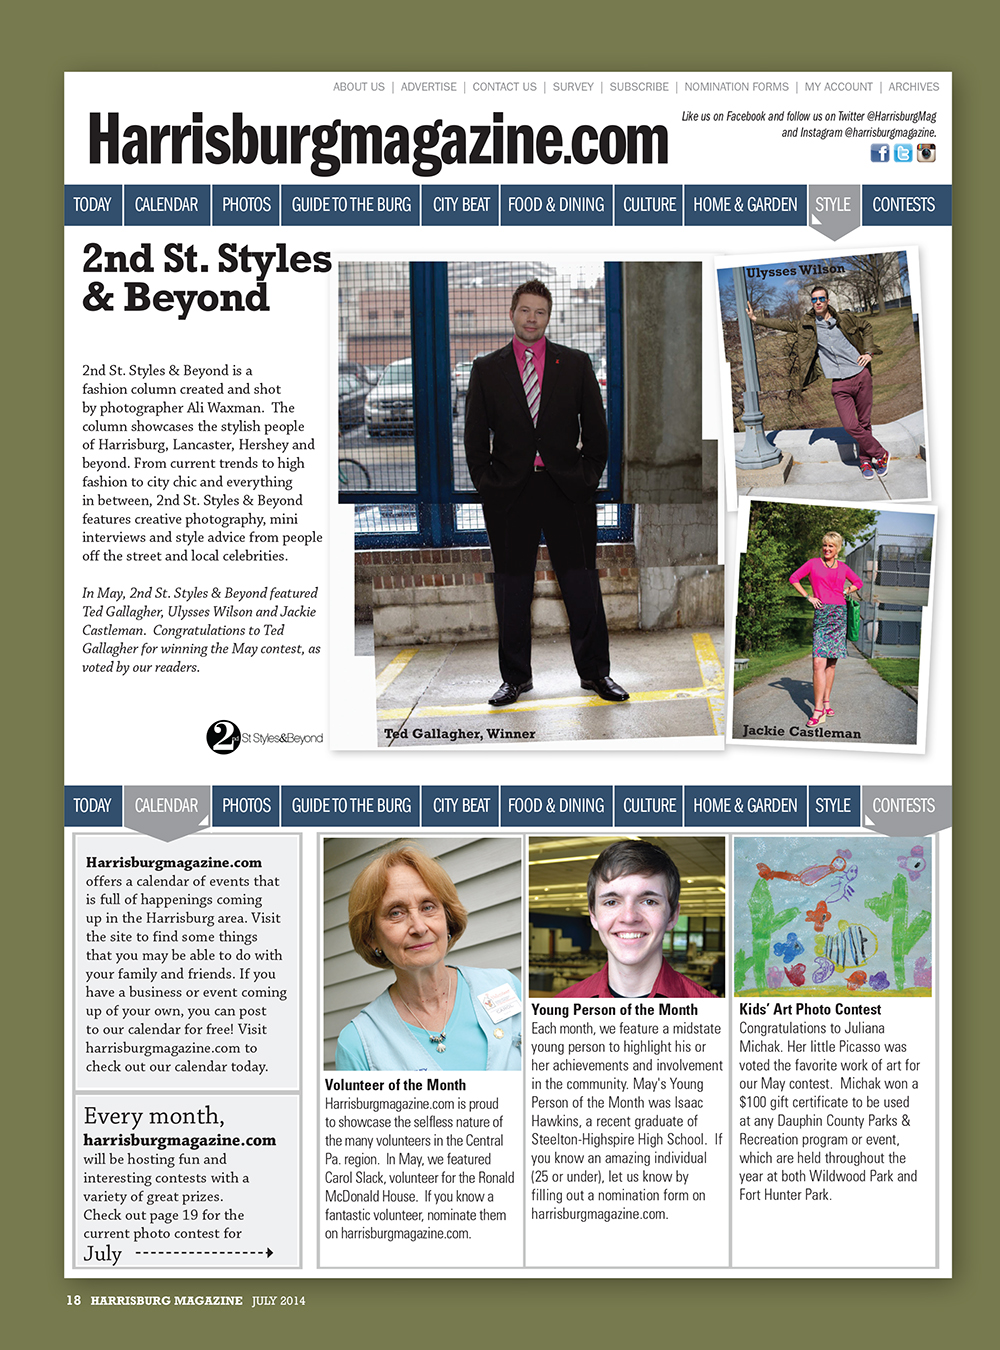 JULY 2014 Harrisburg Magazine's 2nd St Styles & Beyond